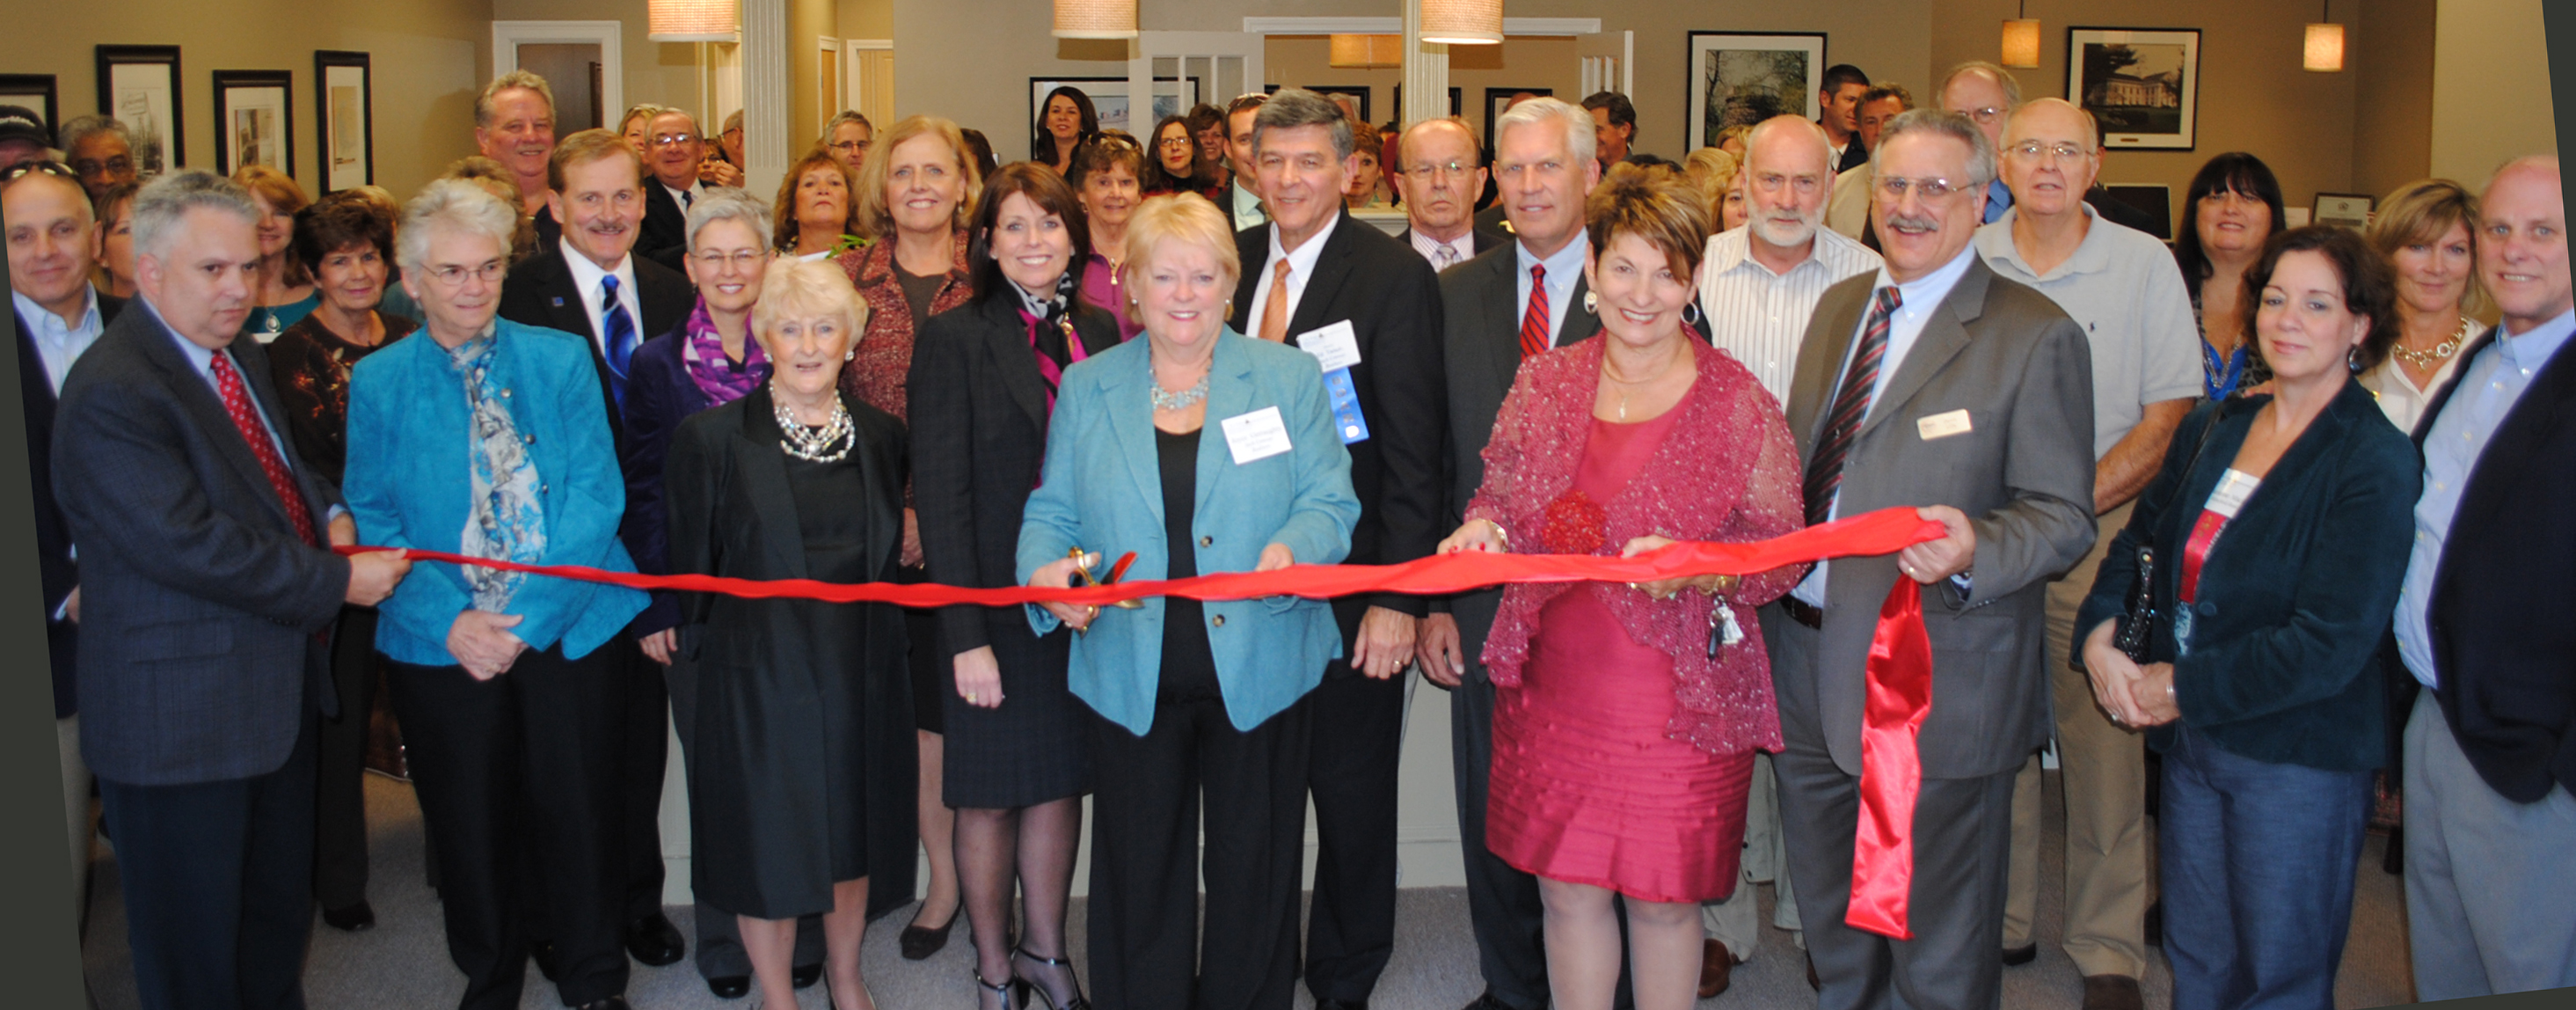 Jack Conway Real Estate Mansfield MA Ribbon Cutting